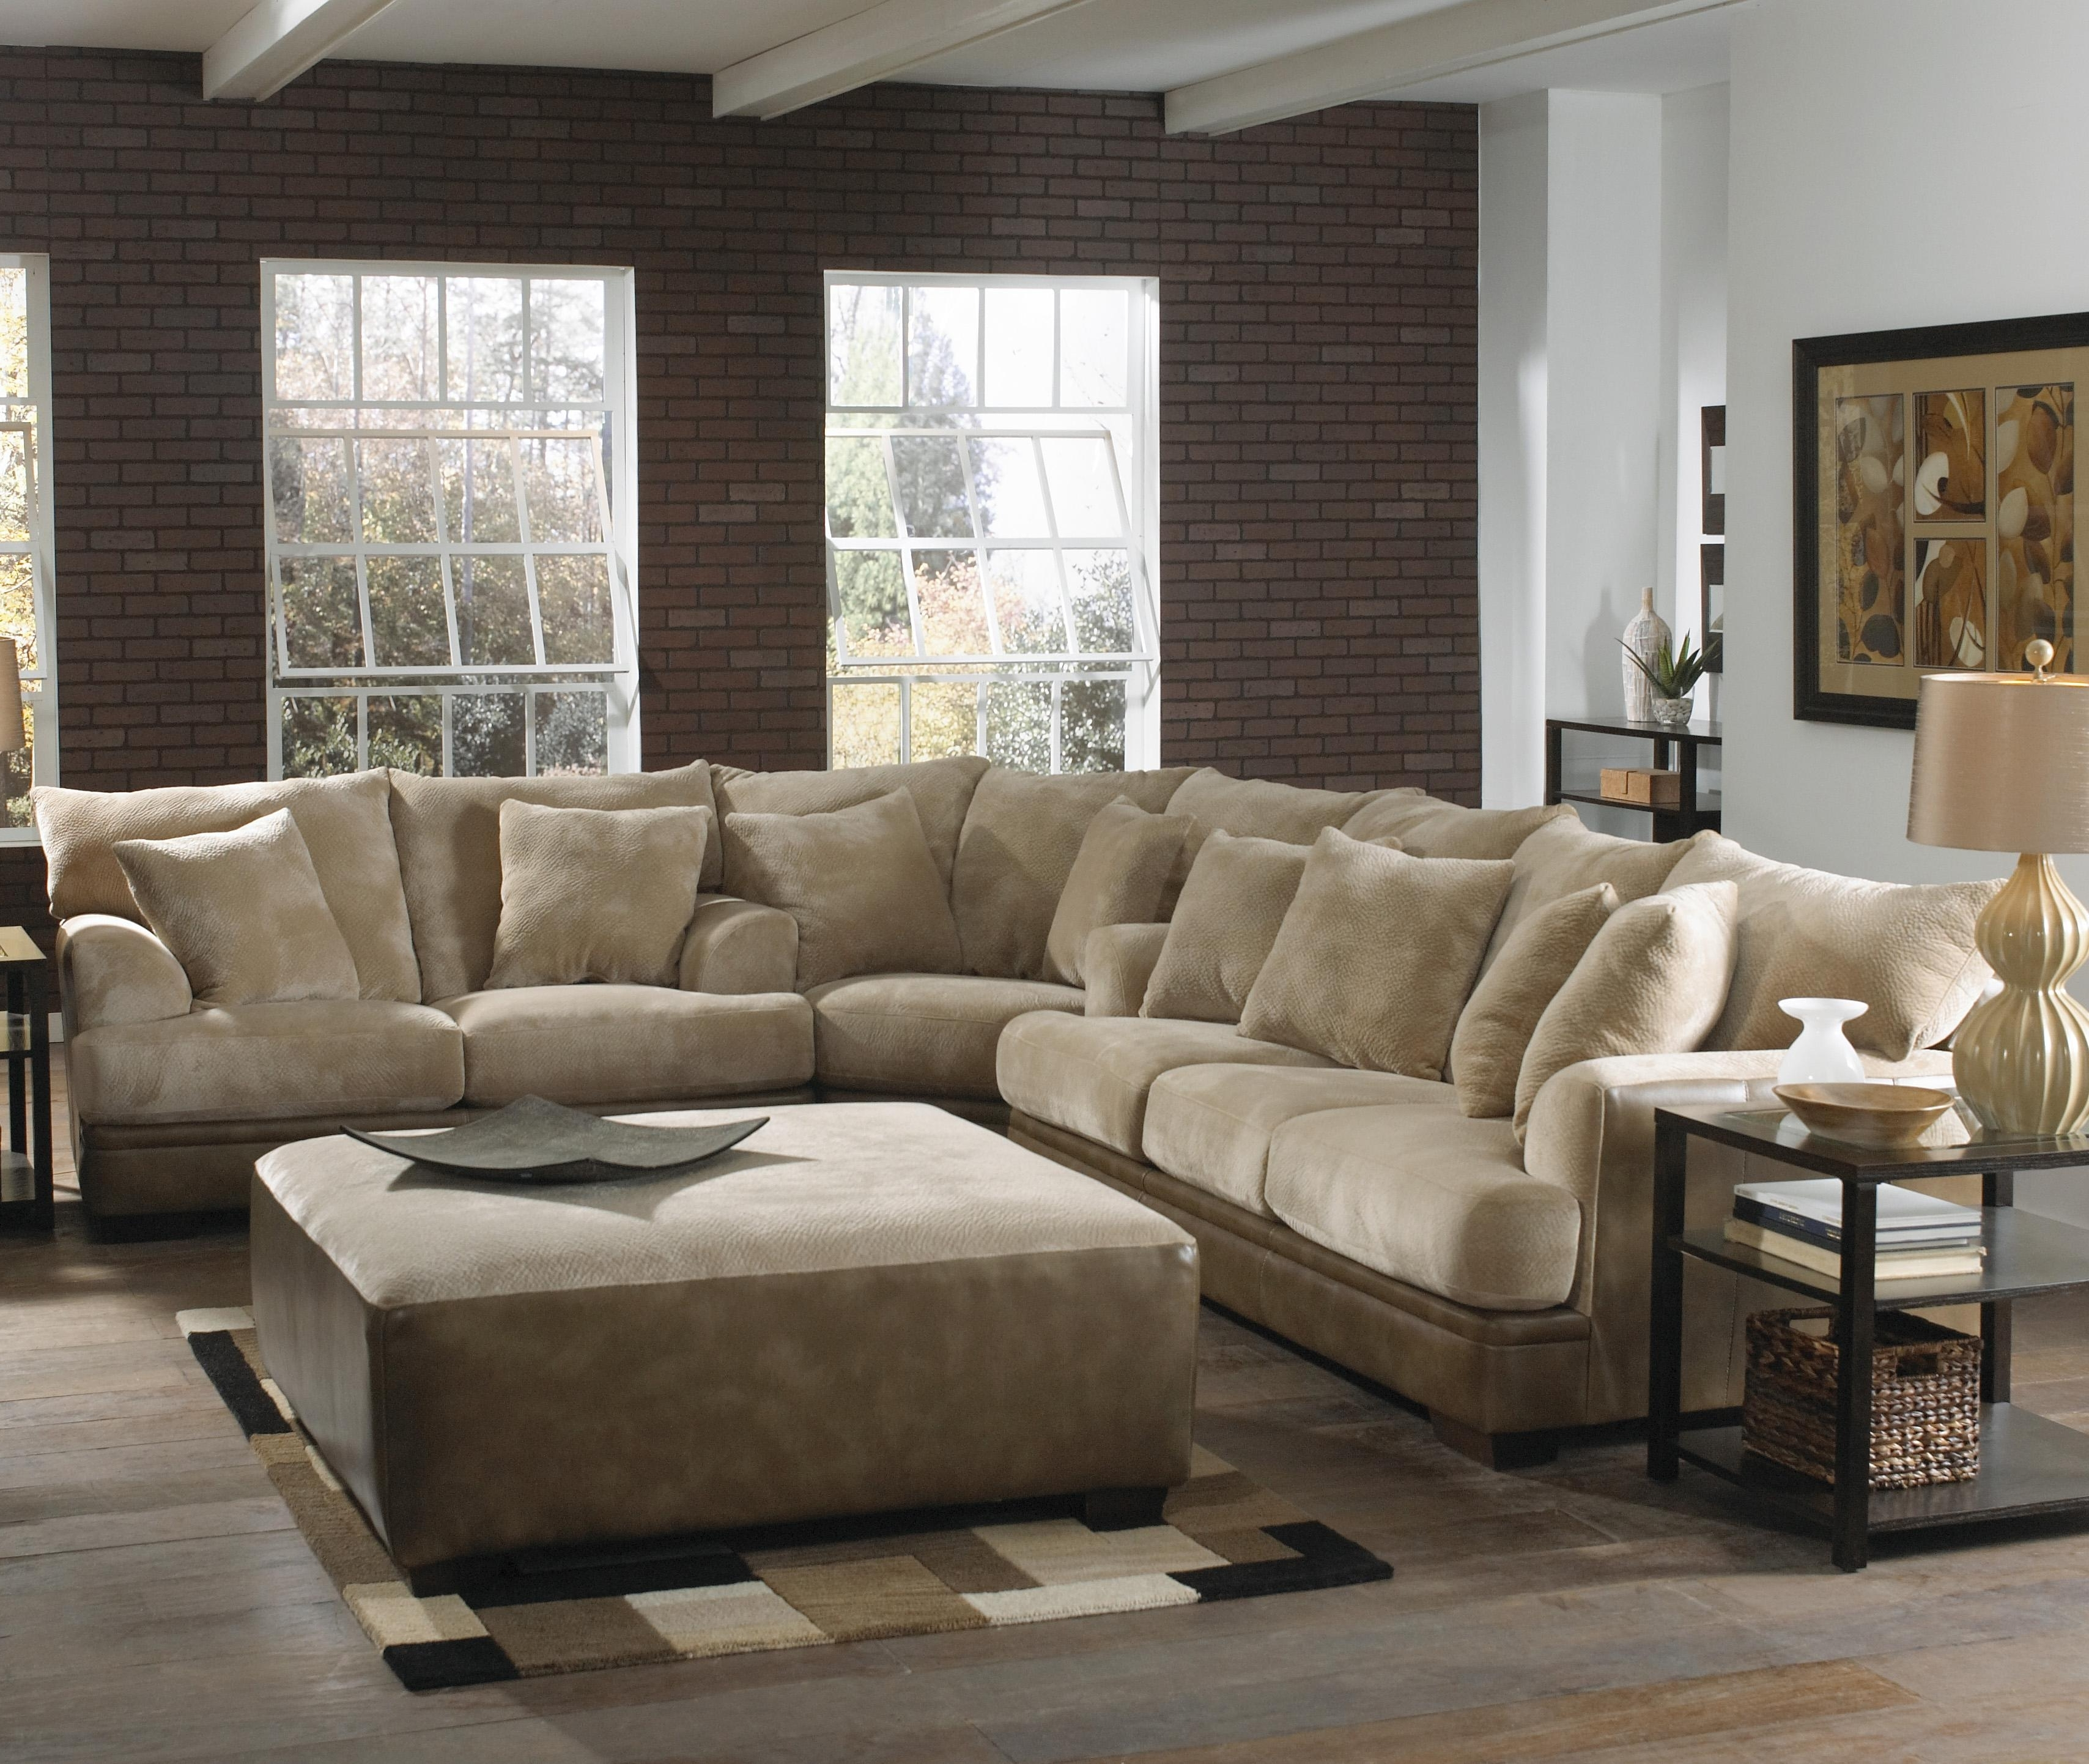 2019 Sectional Sofas At The Brick Within Rustic Wooden Laminate Flooring With Light Brown Sofa Using (View 10 of 20)